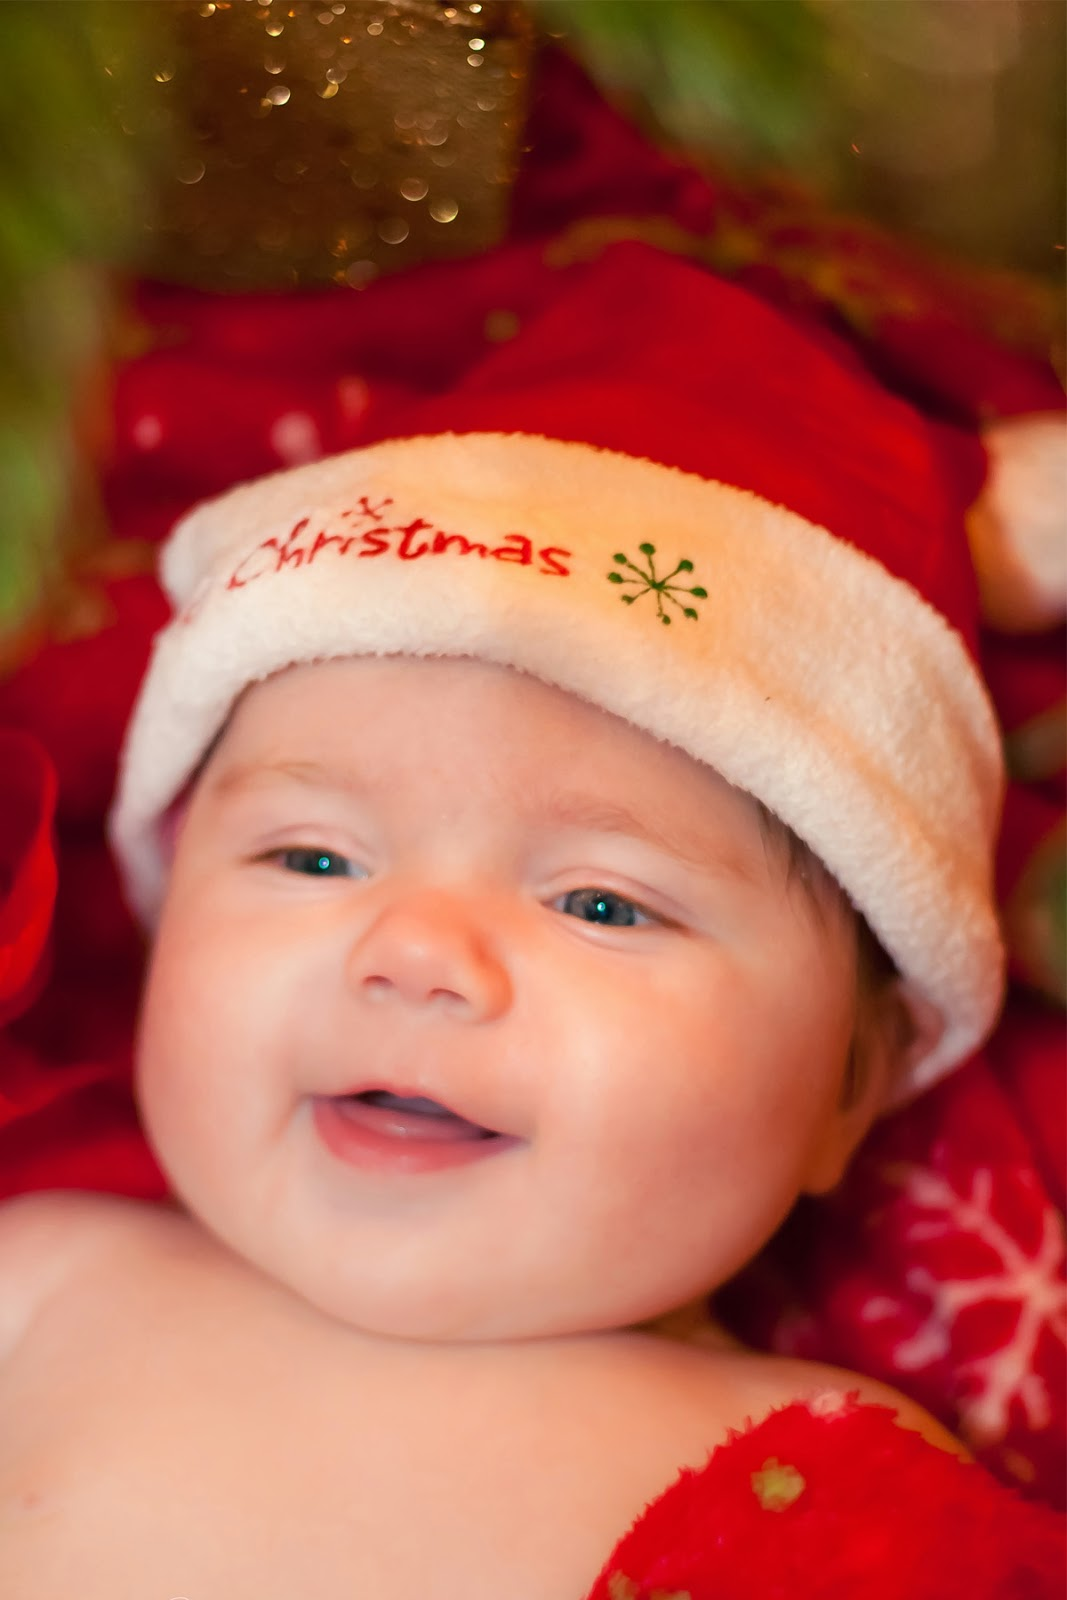 Christmas babies hd wallpapers hd wallpapers high definition